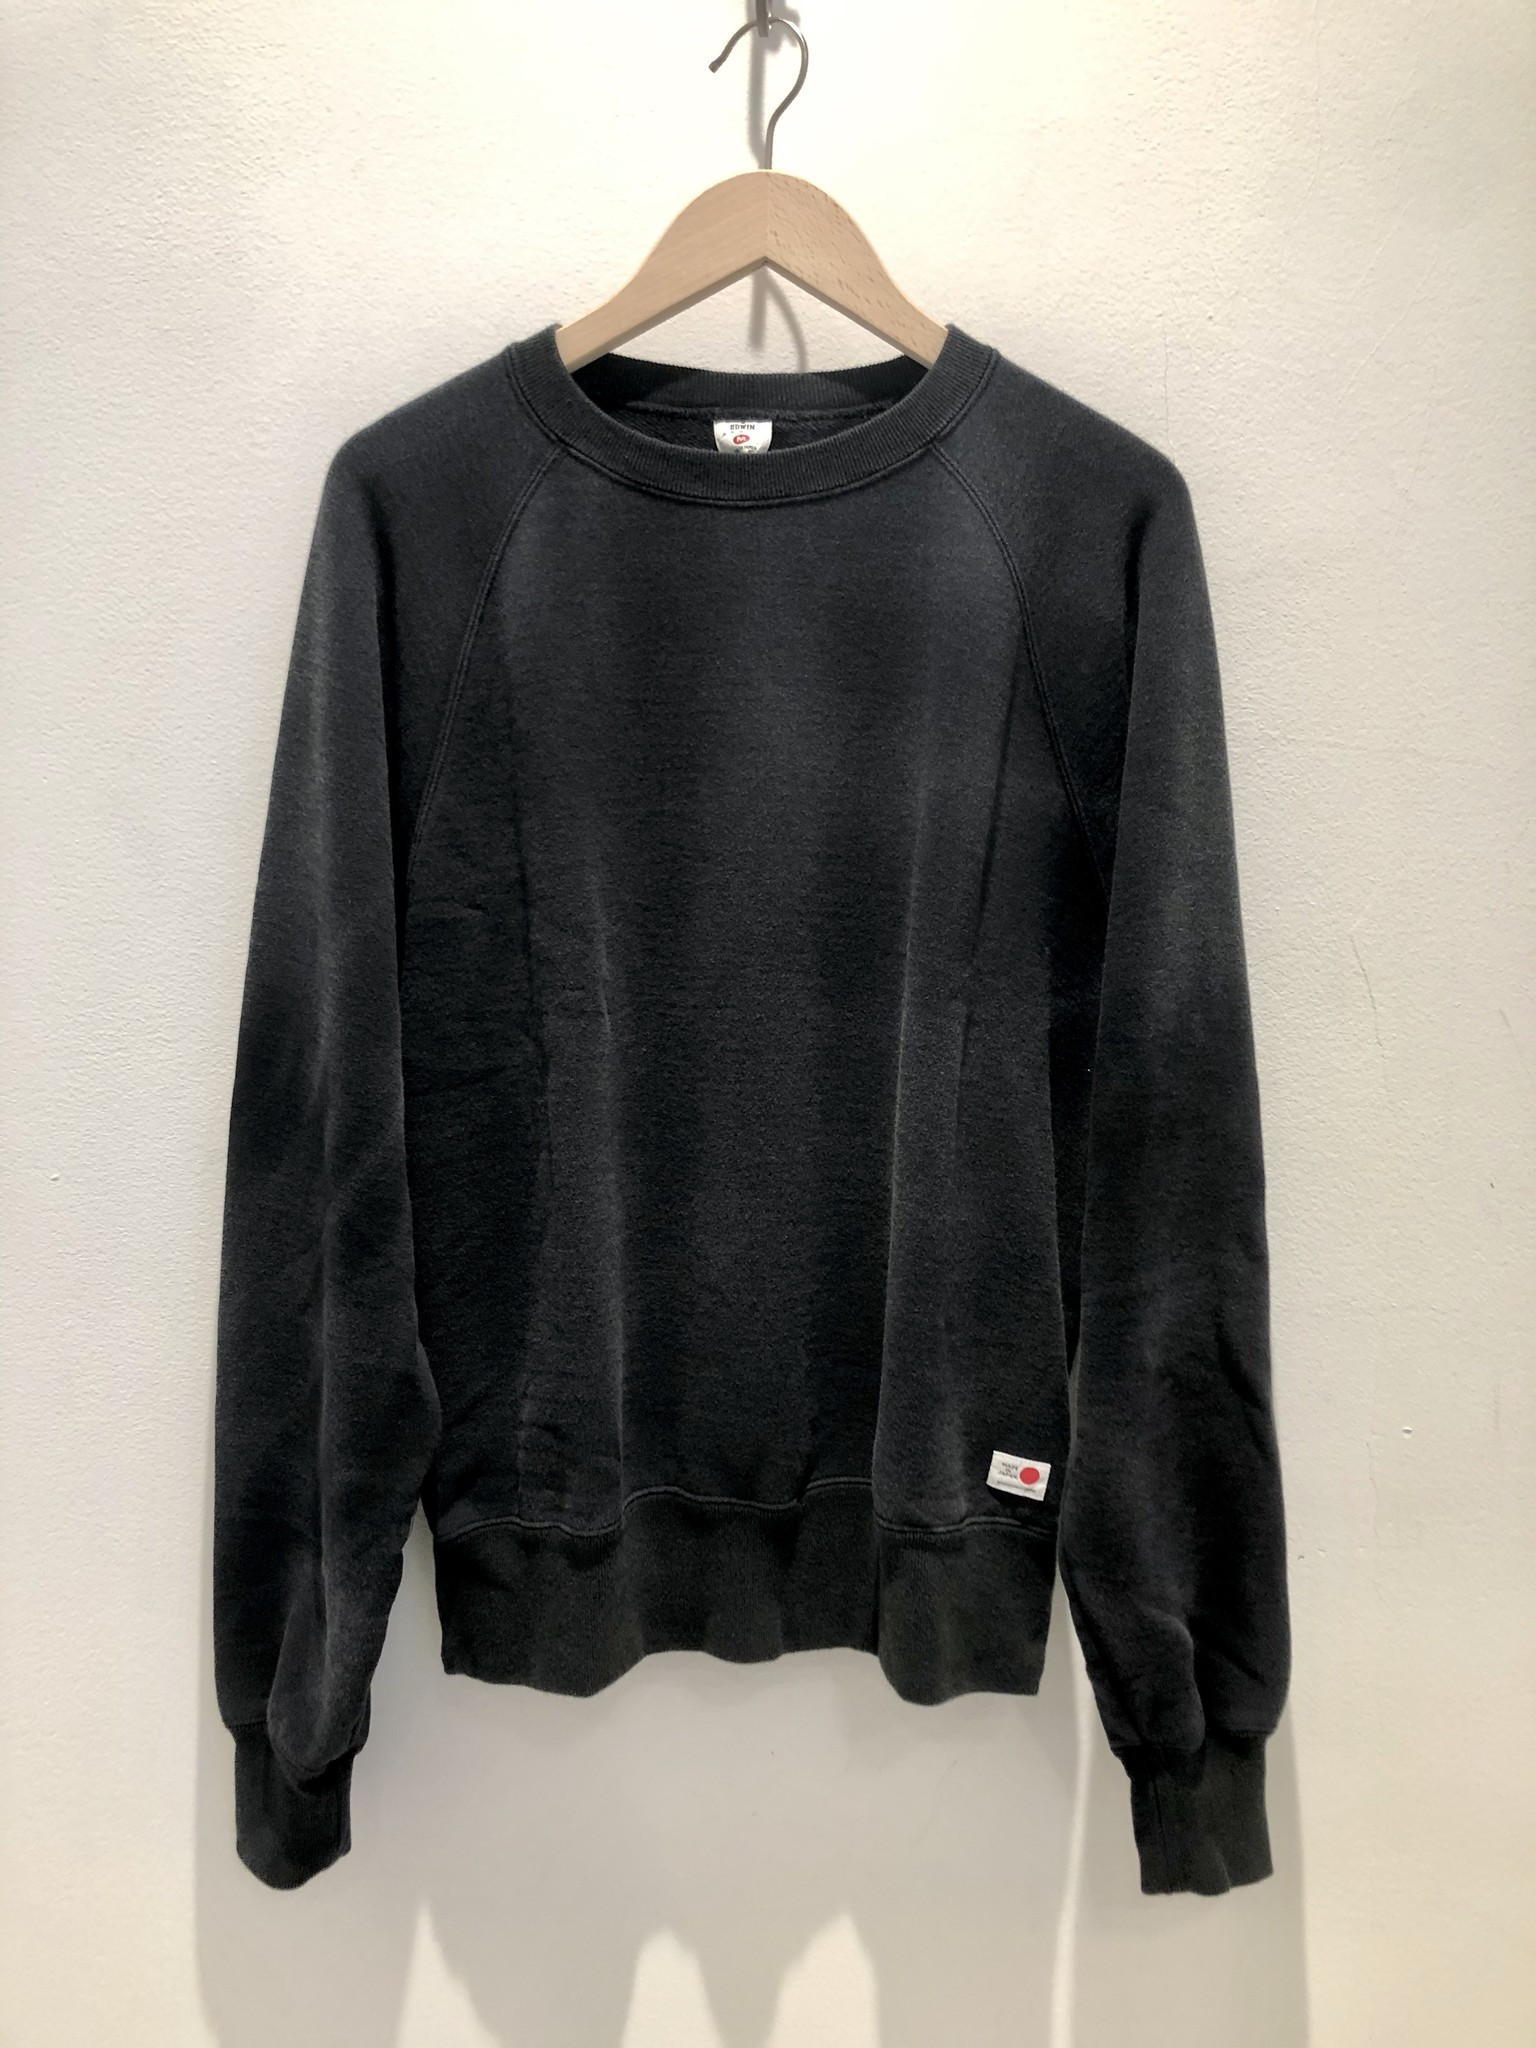 Raglan Made In Japan Crewneck Used Maruva Black-1